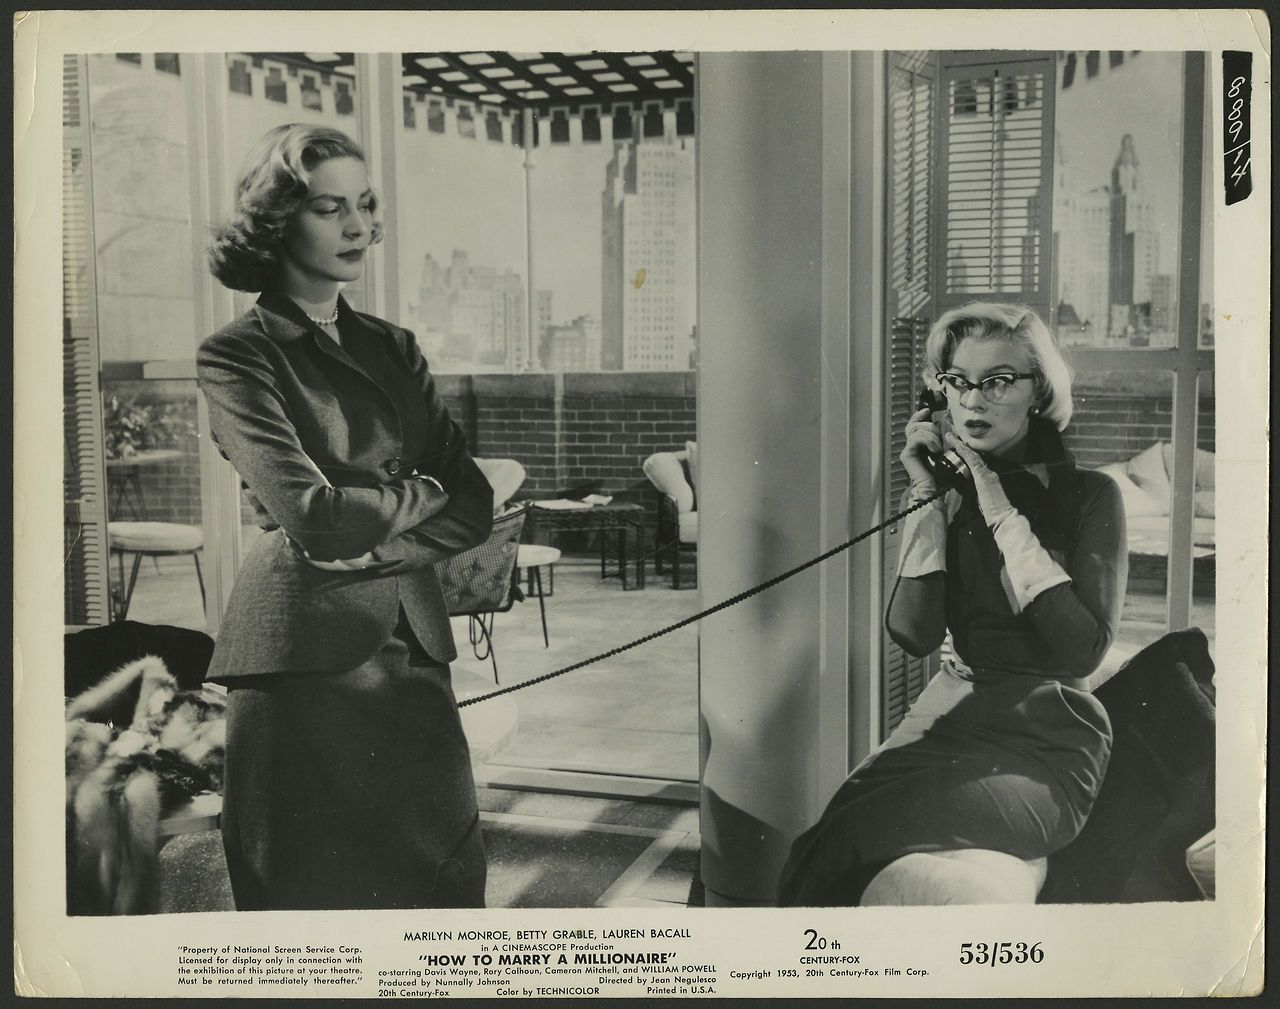 Lauren Bacall and Marilyn Monroe in How to Marry a Millionaire (1953)